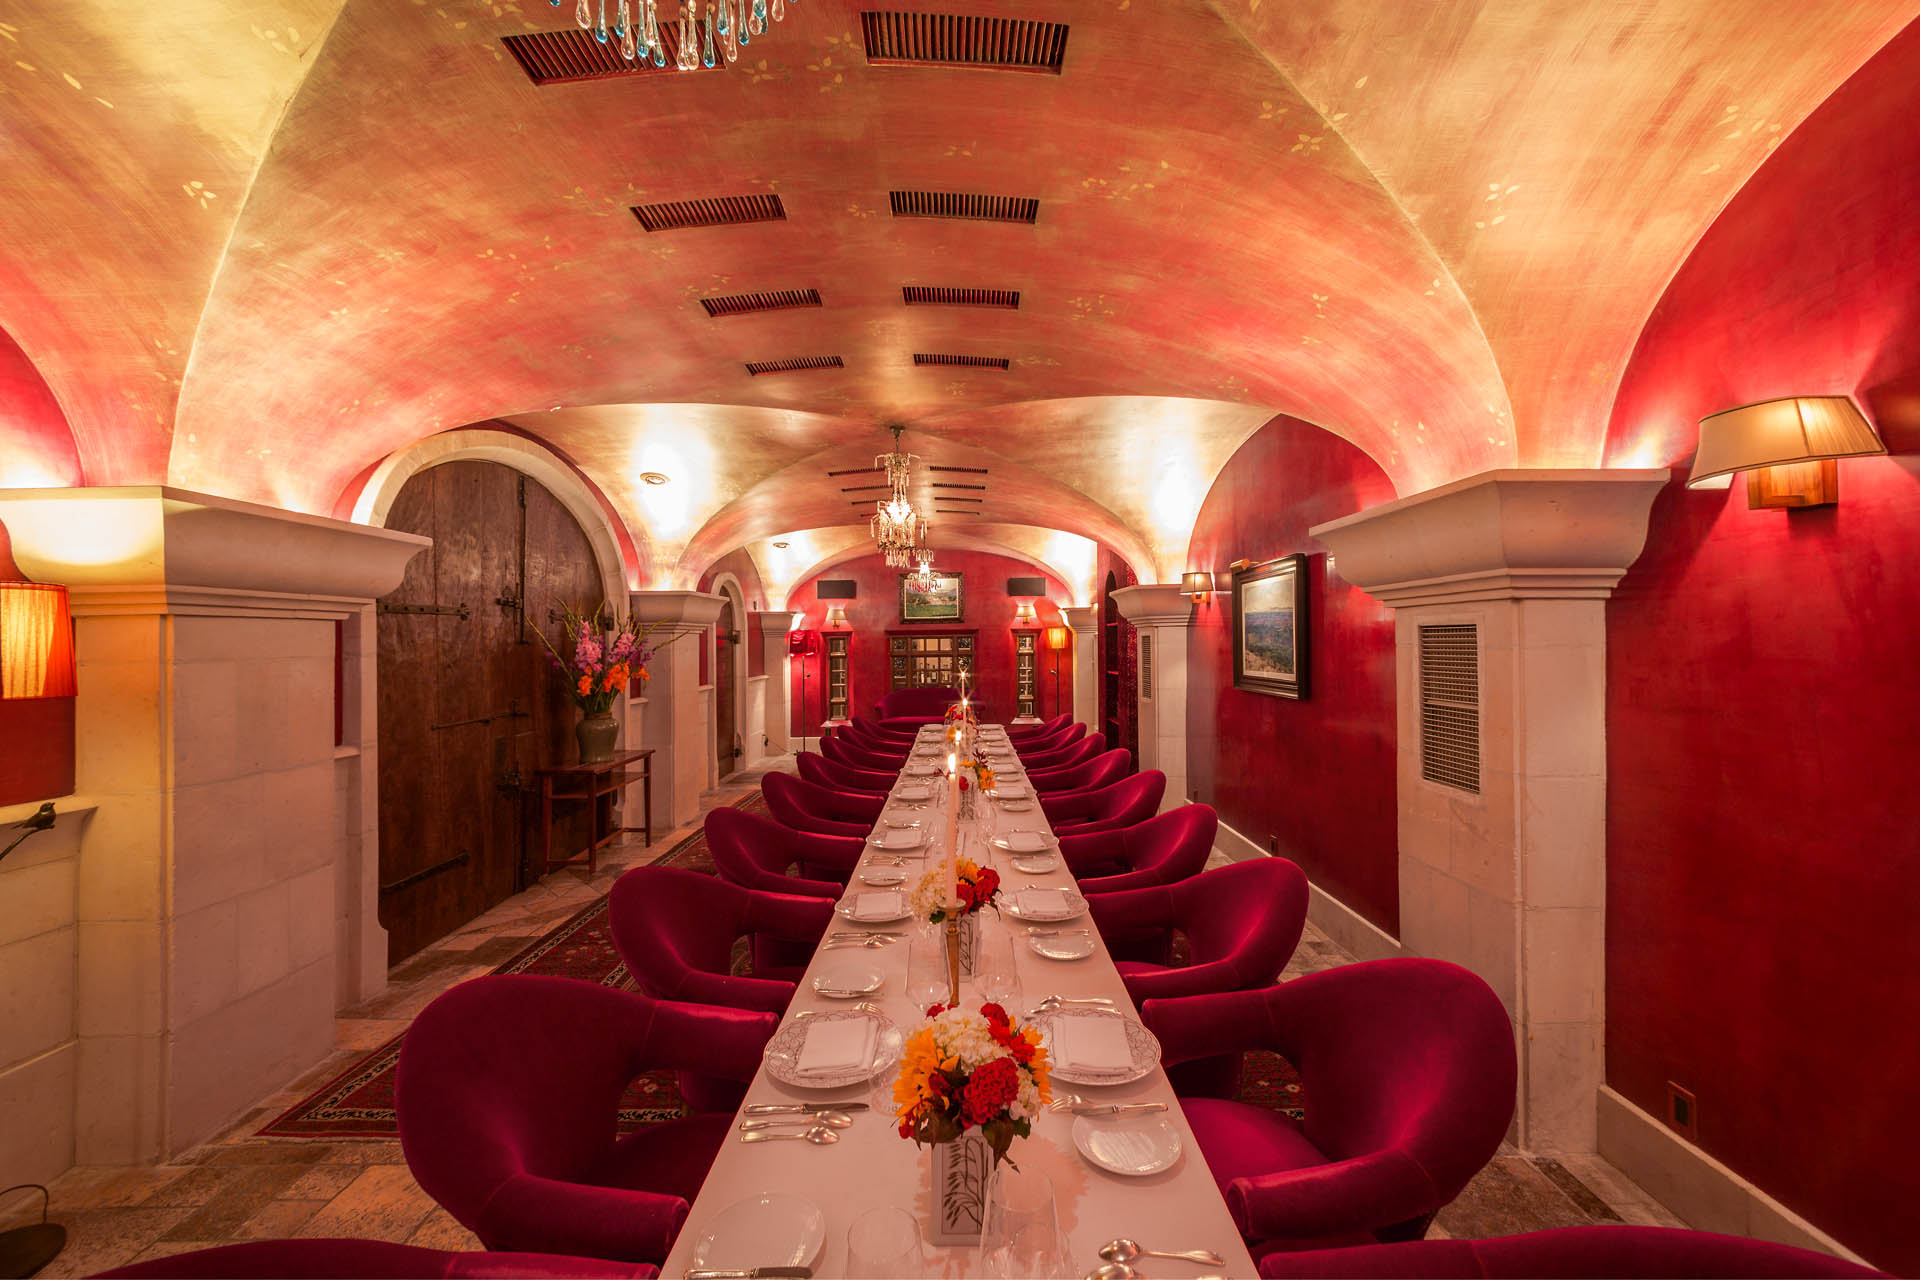 Private dining bouley red room tribeca nyc 10013 for Best restaurants with private dining rooms nyc